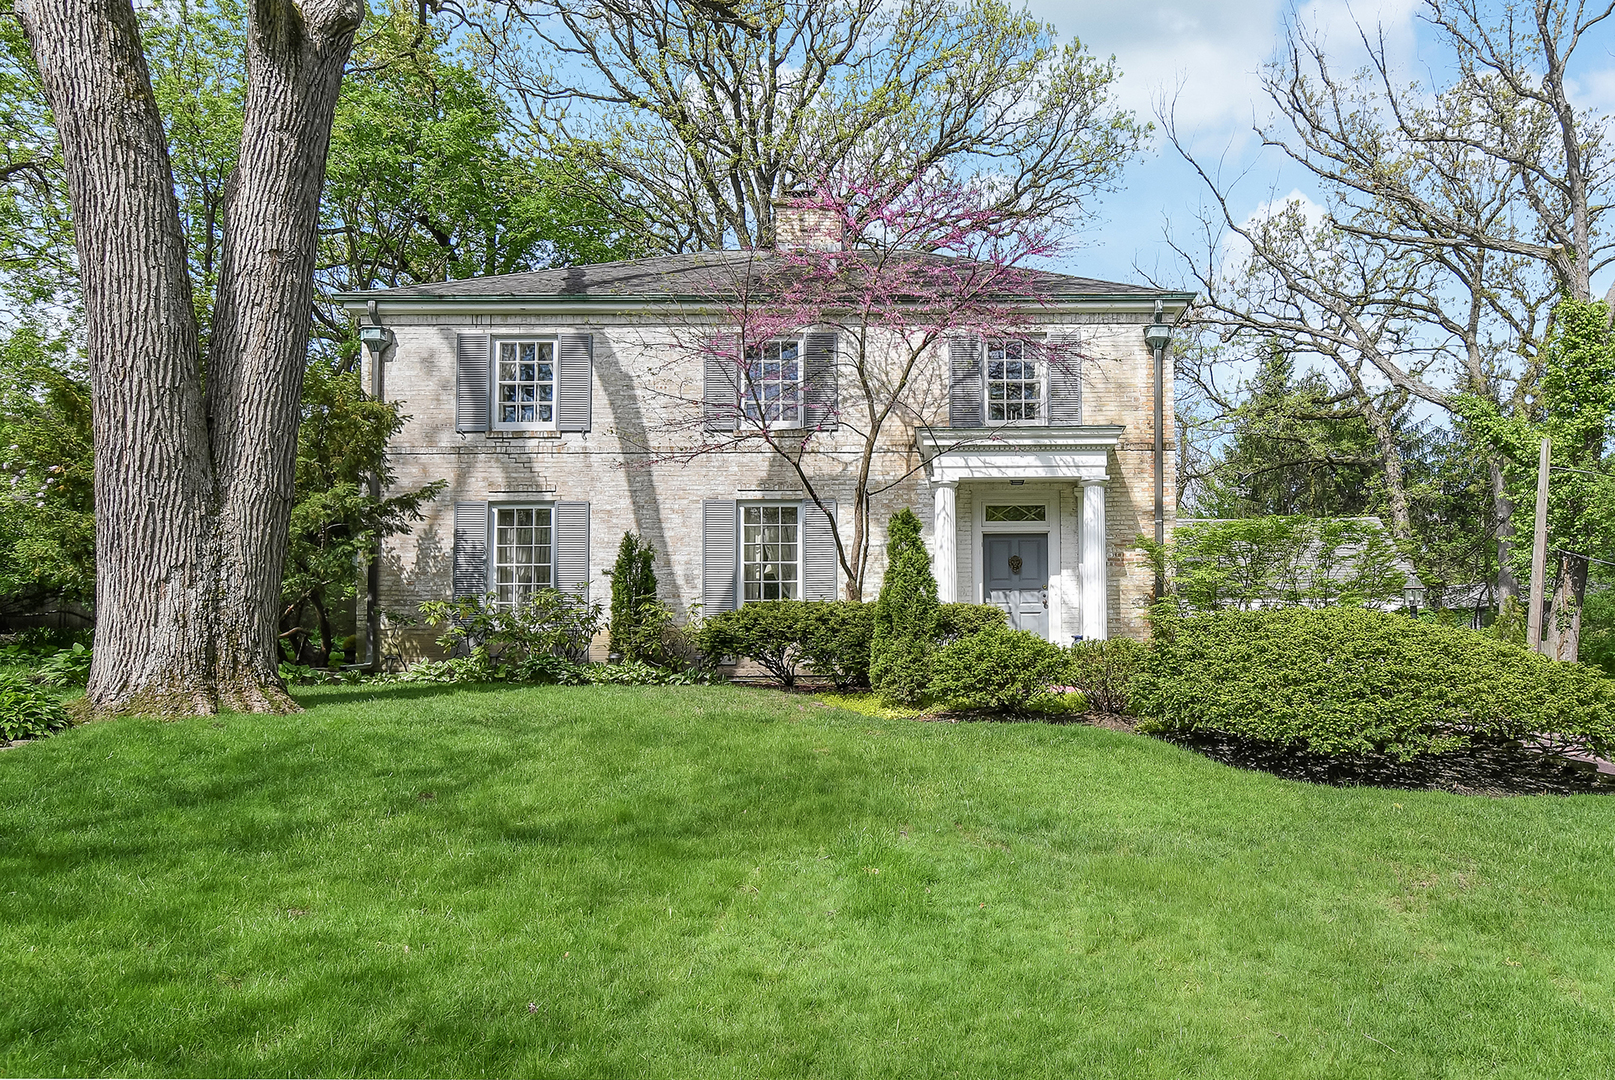 420 South County Line Road, Hinsdale, Illinois 60521